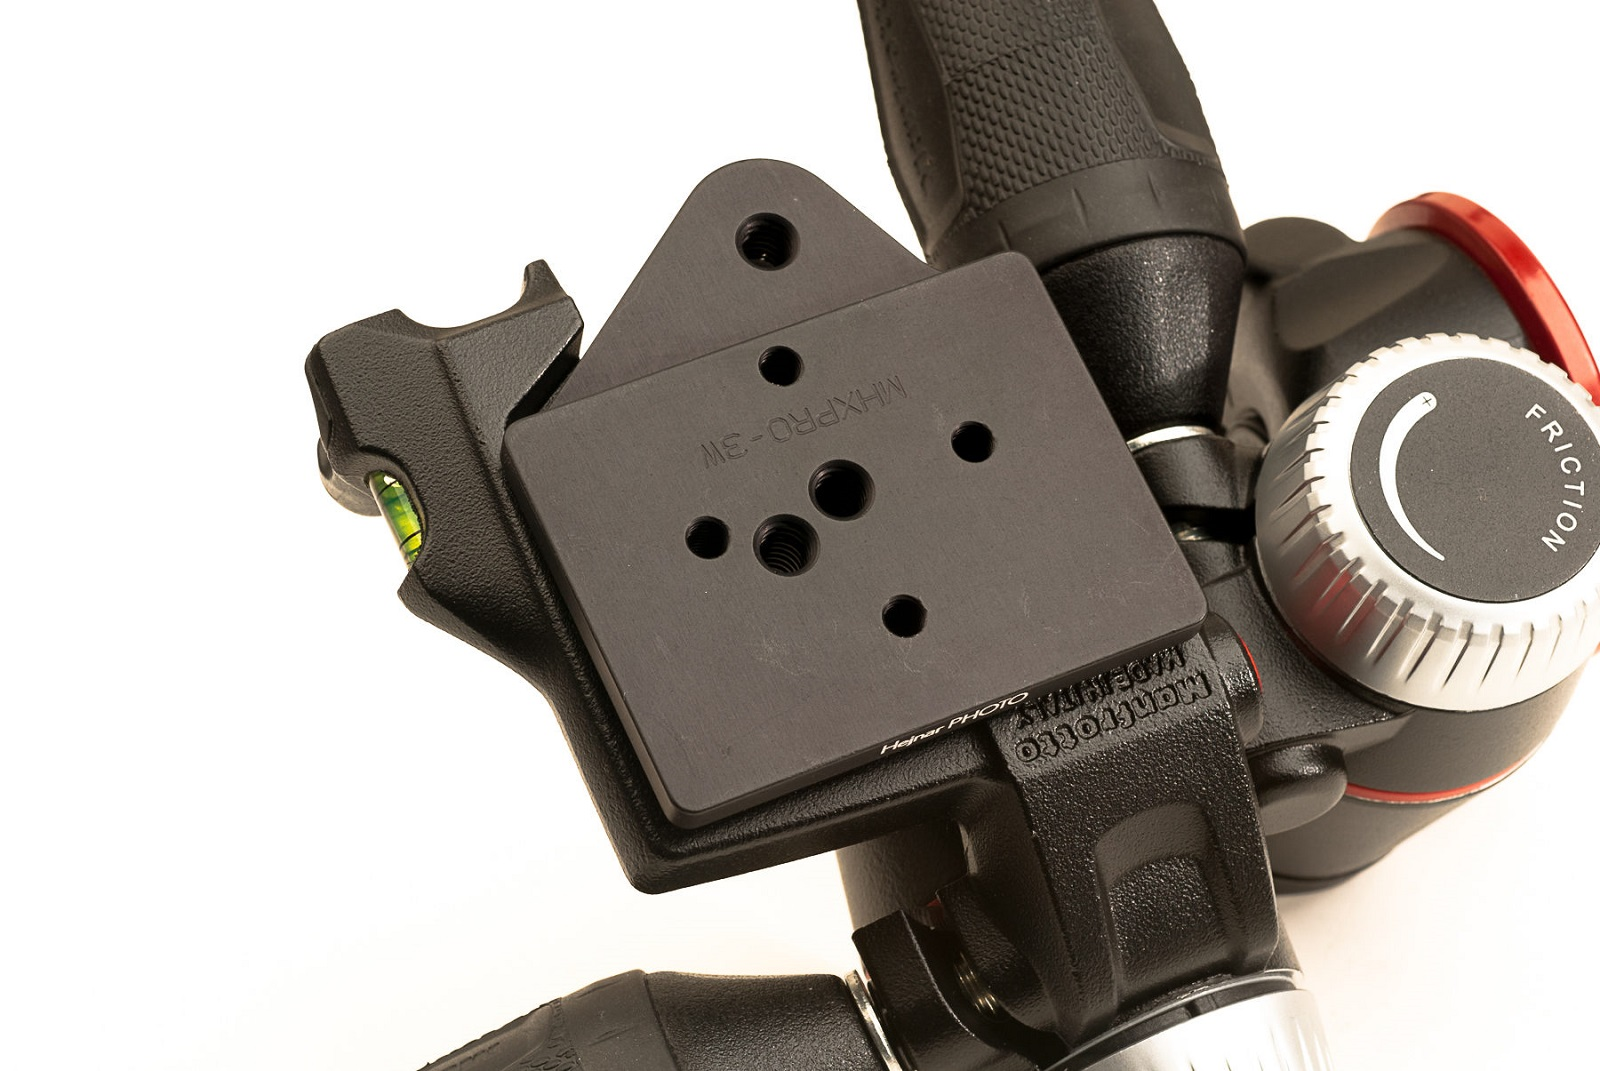 Hejnar Photo Conversion Plate installed on Manfrotto MHXPRO-3W